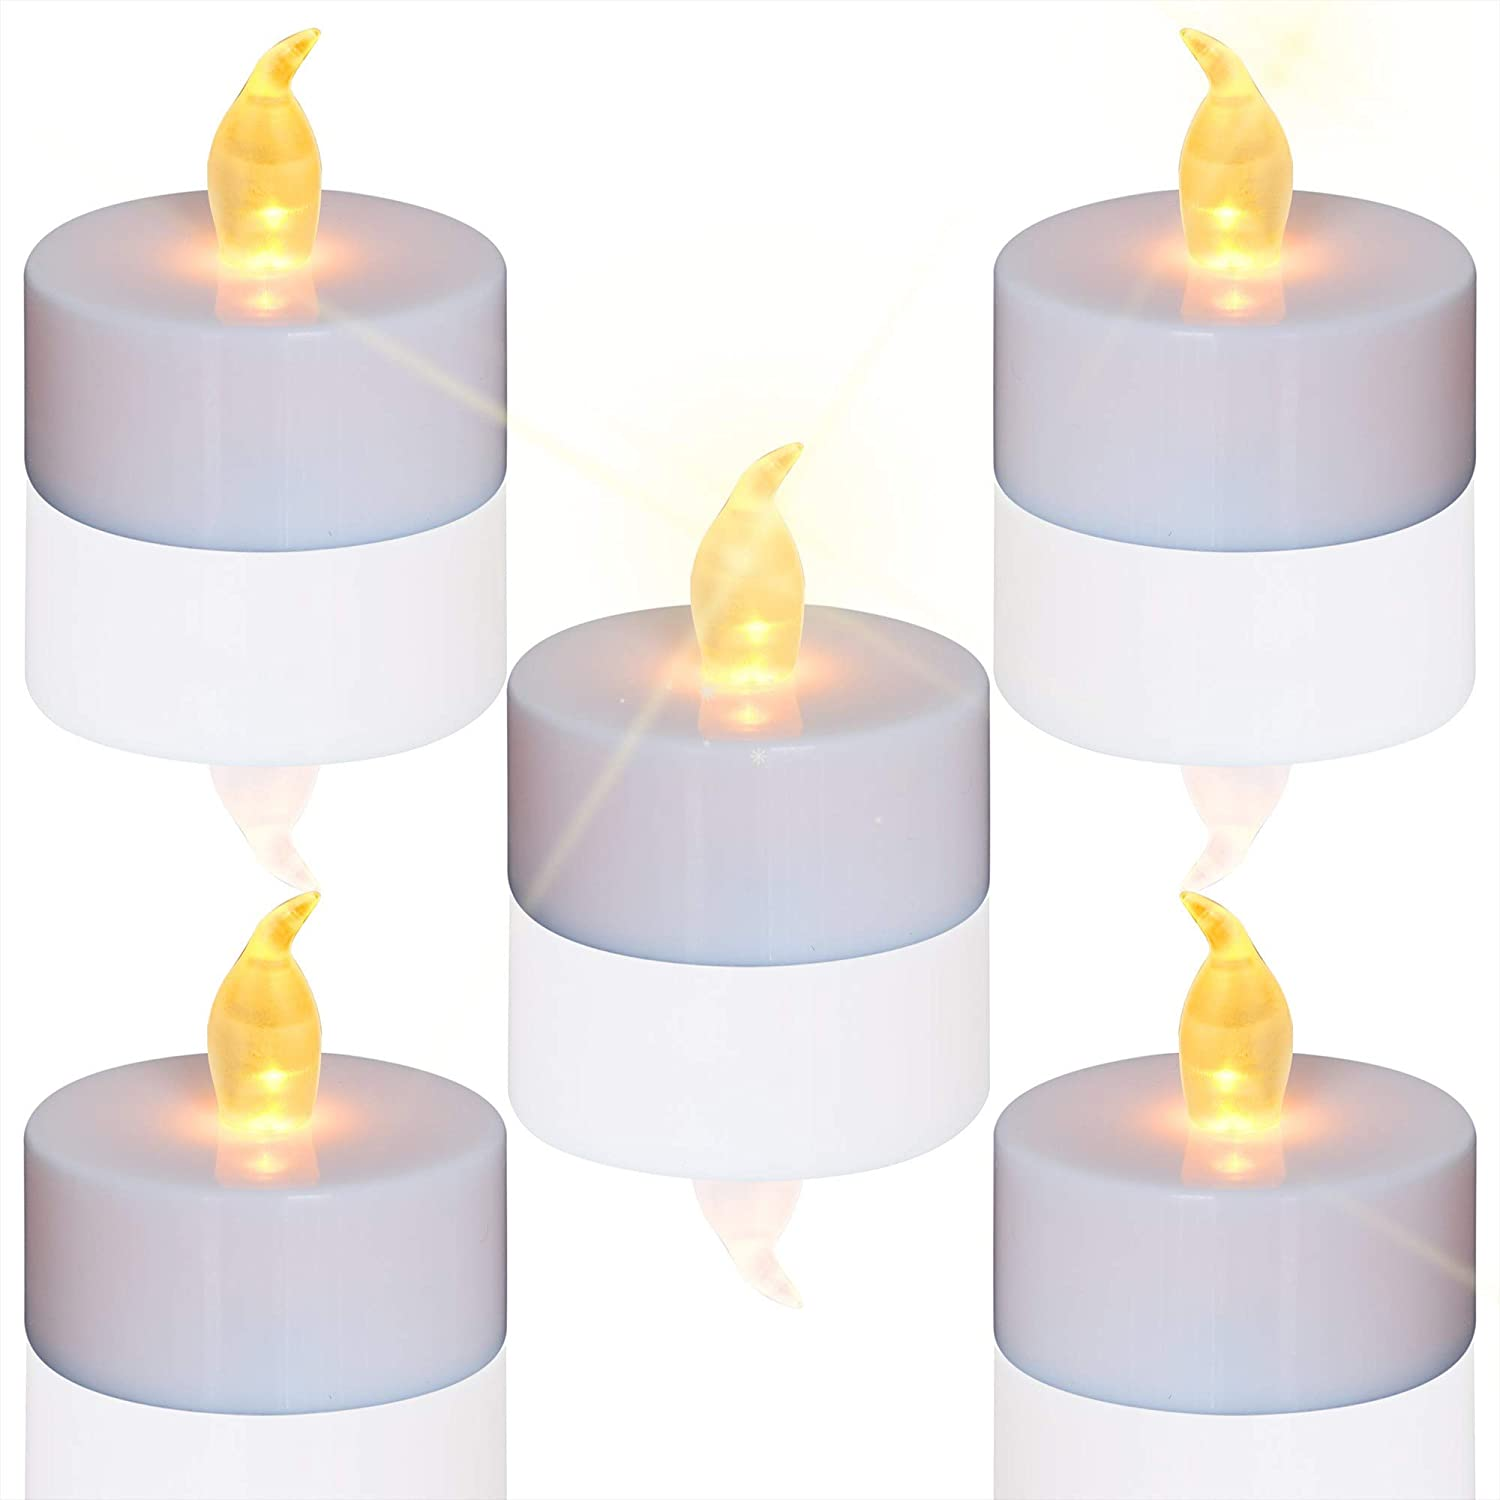 Tea Lights, 24pcs Flameless LED Tea Lights Candles, Flickering Warm Yellow, 100 Hours Battery-Powered Tea Light, Ideal Party, Wedding, Birthday, Gifts Home Decoration